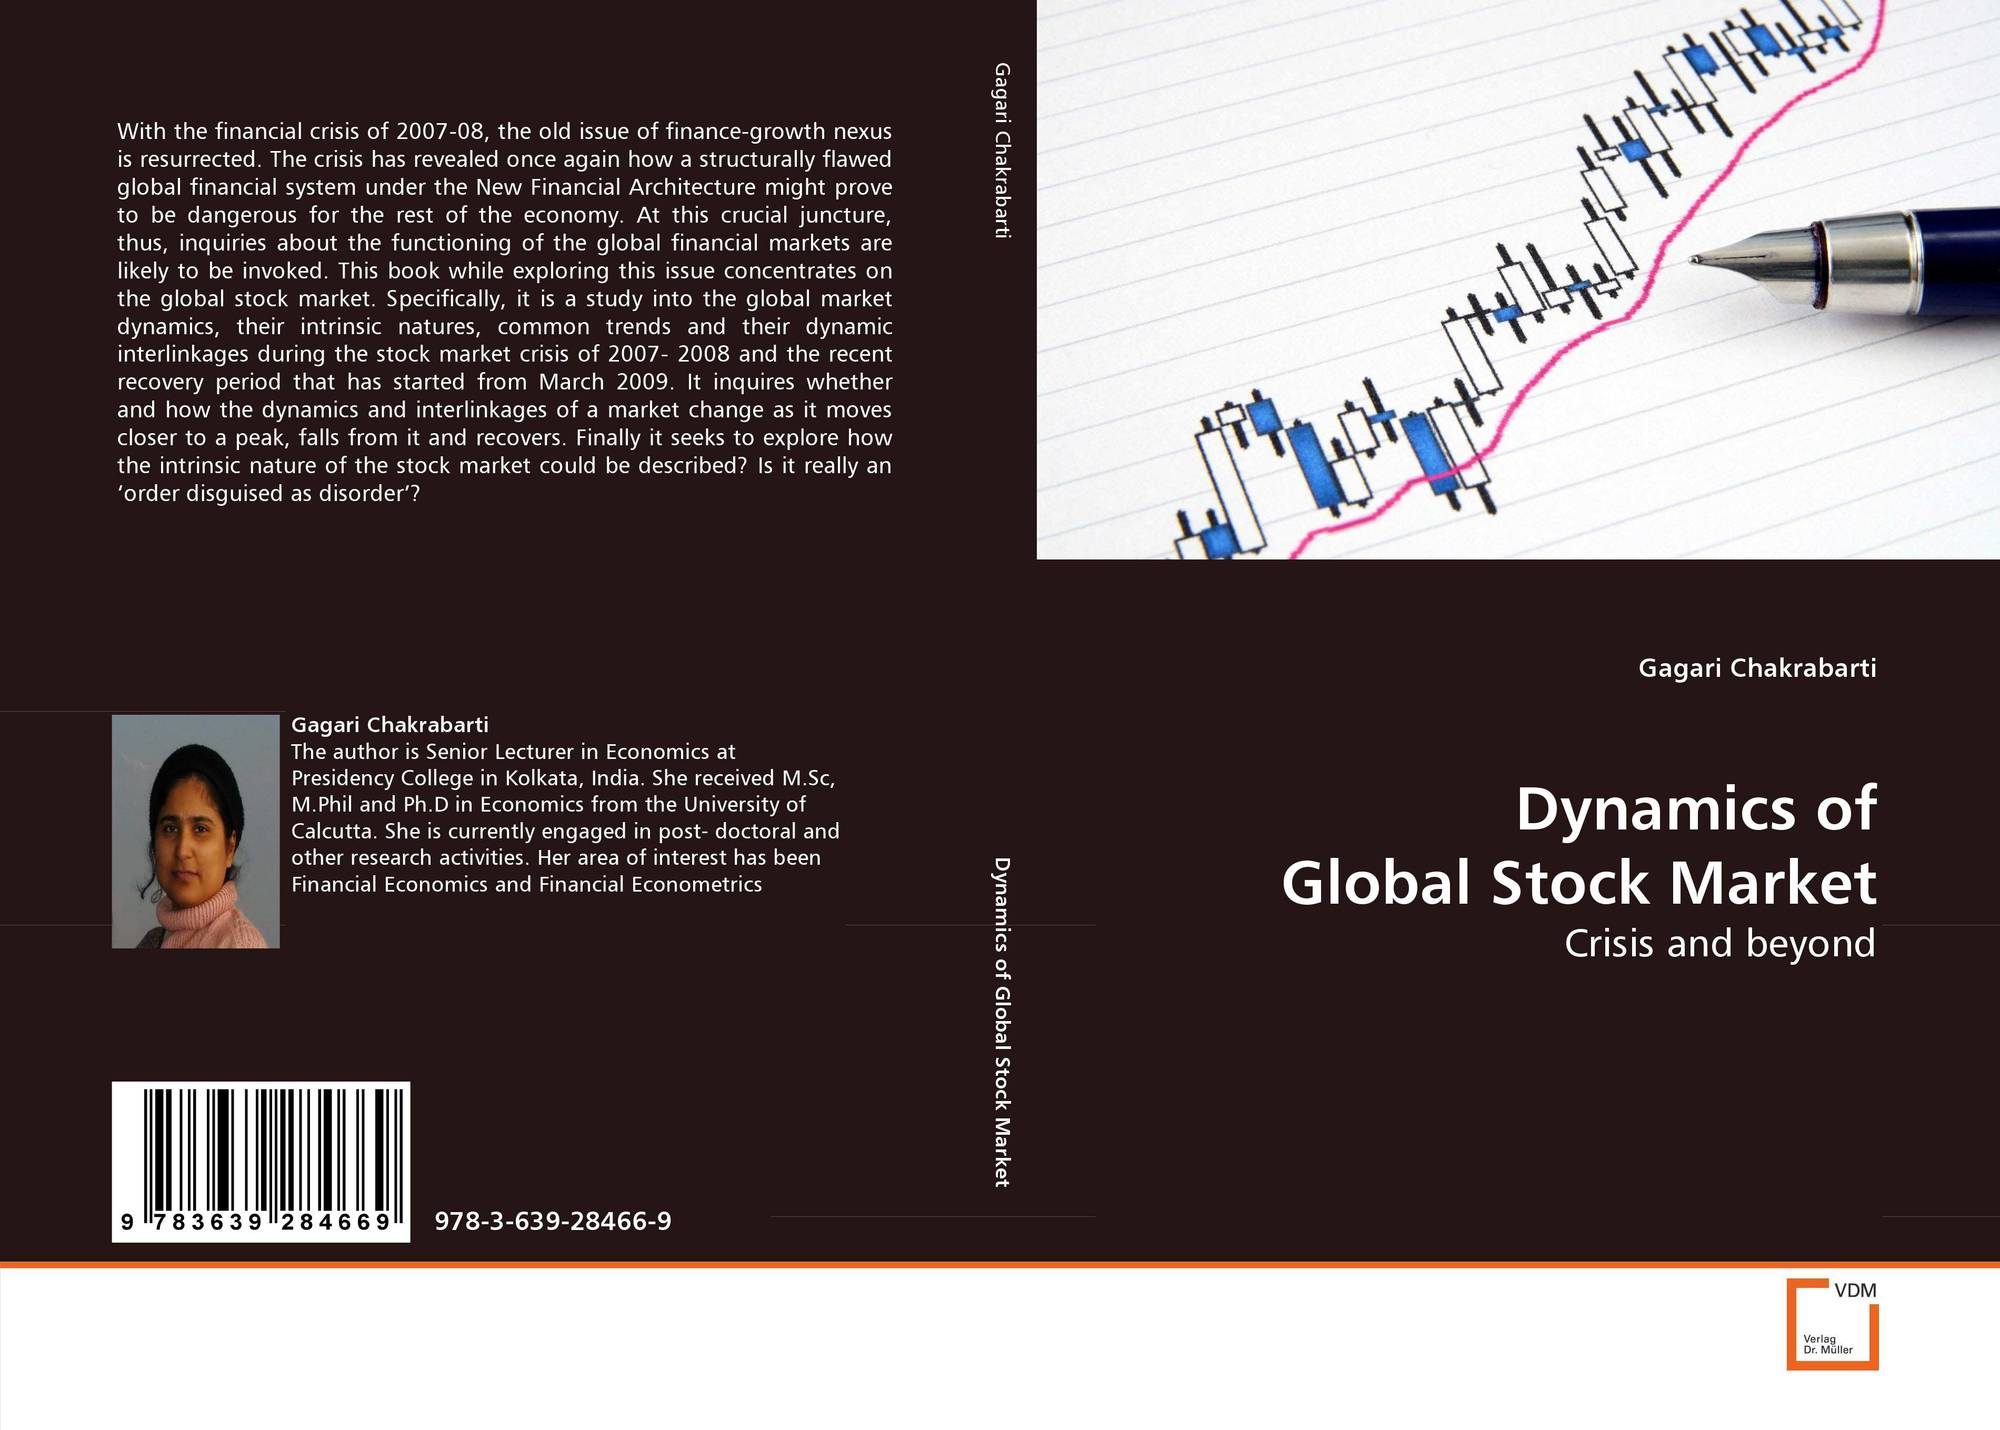 dynamics of globalization 2 essay Recent era of globalization has witnessed the emergence of regional business cycles there have been profound changes in the volume, direction, and nature of international trade and financial flows over the past quarter century (kose and prasad, 2010.